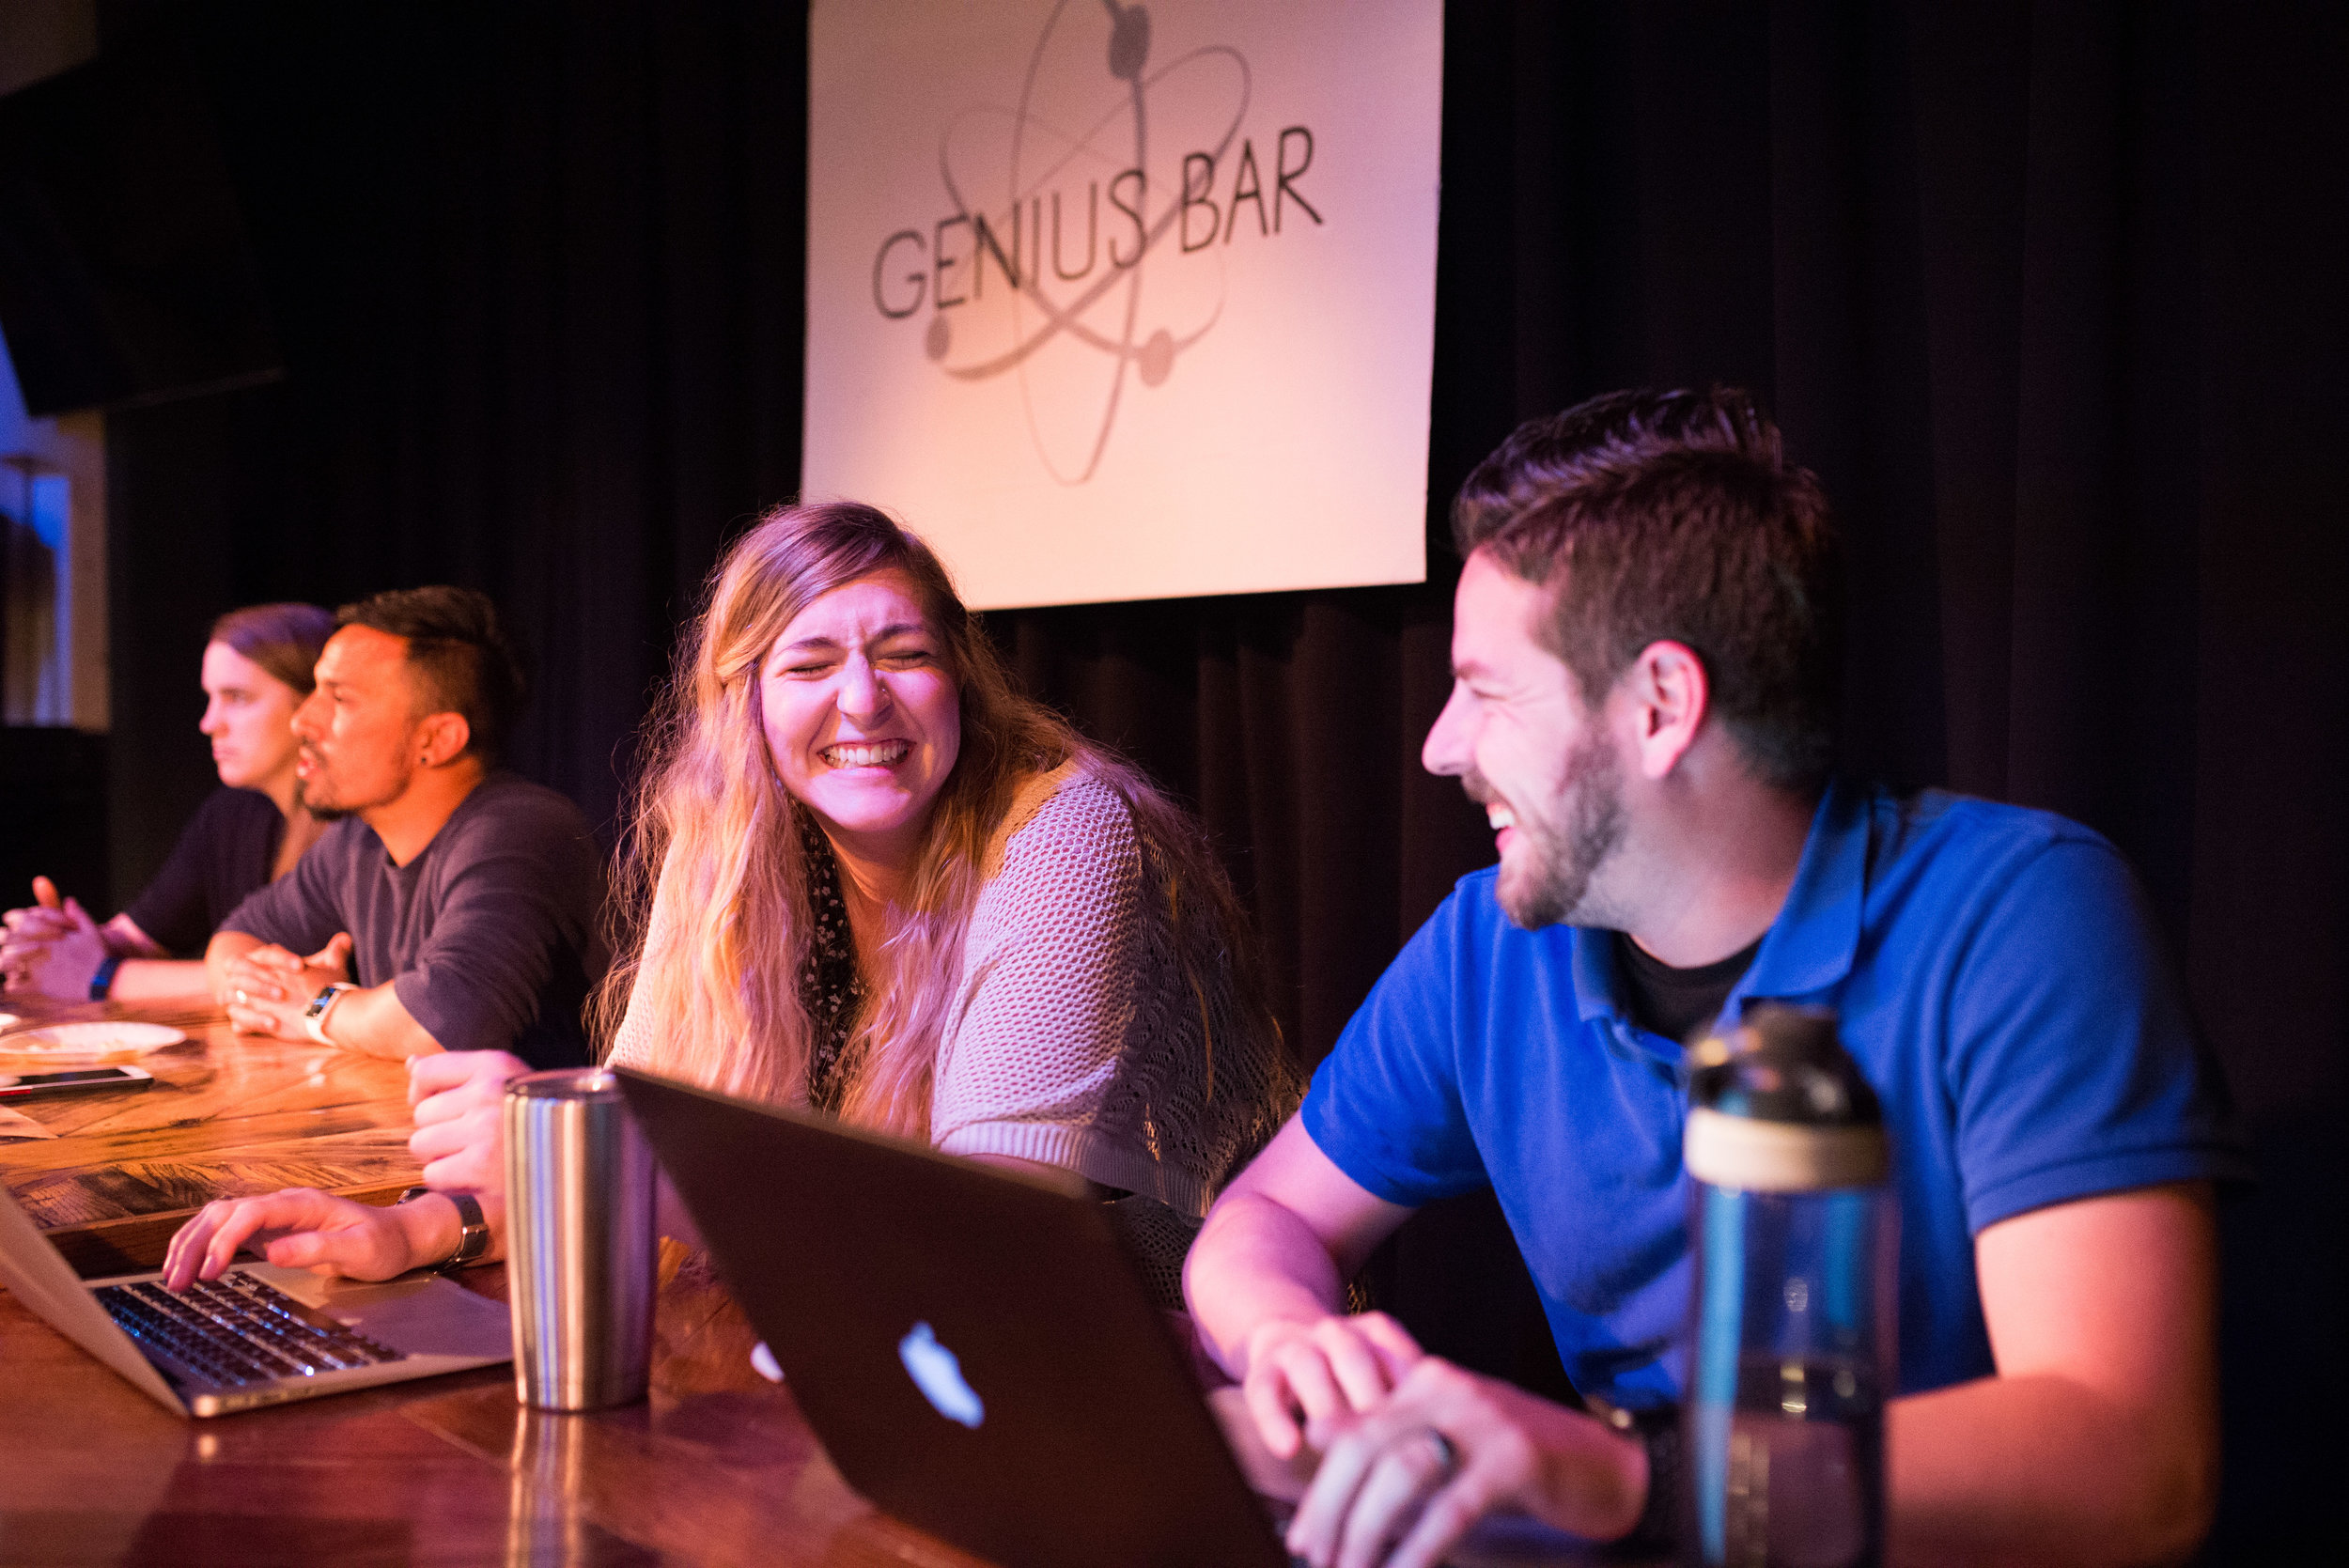 """Our genius bar included theological, public health, foreign language and music """"geniuses"""" - can you guess who is who?"""